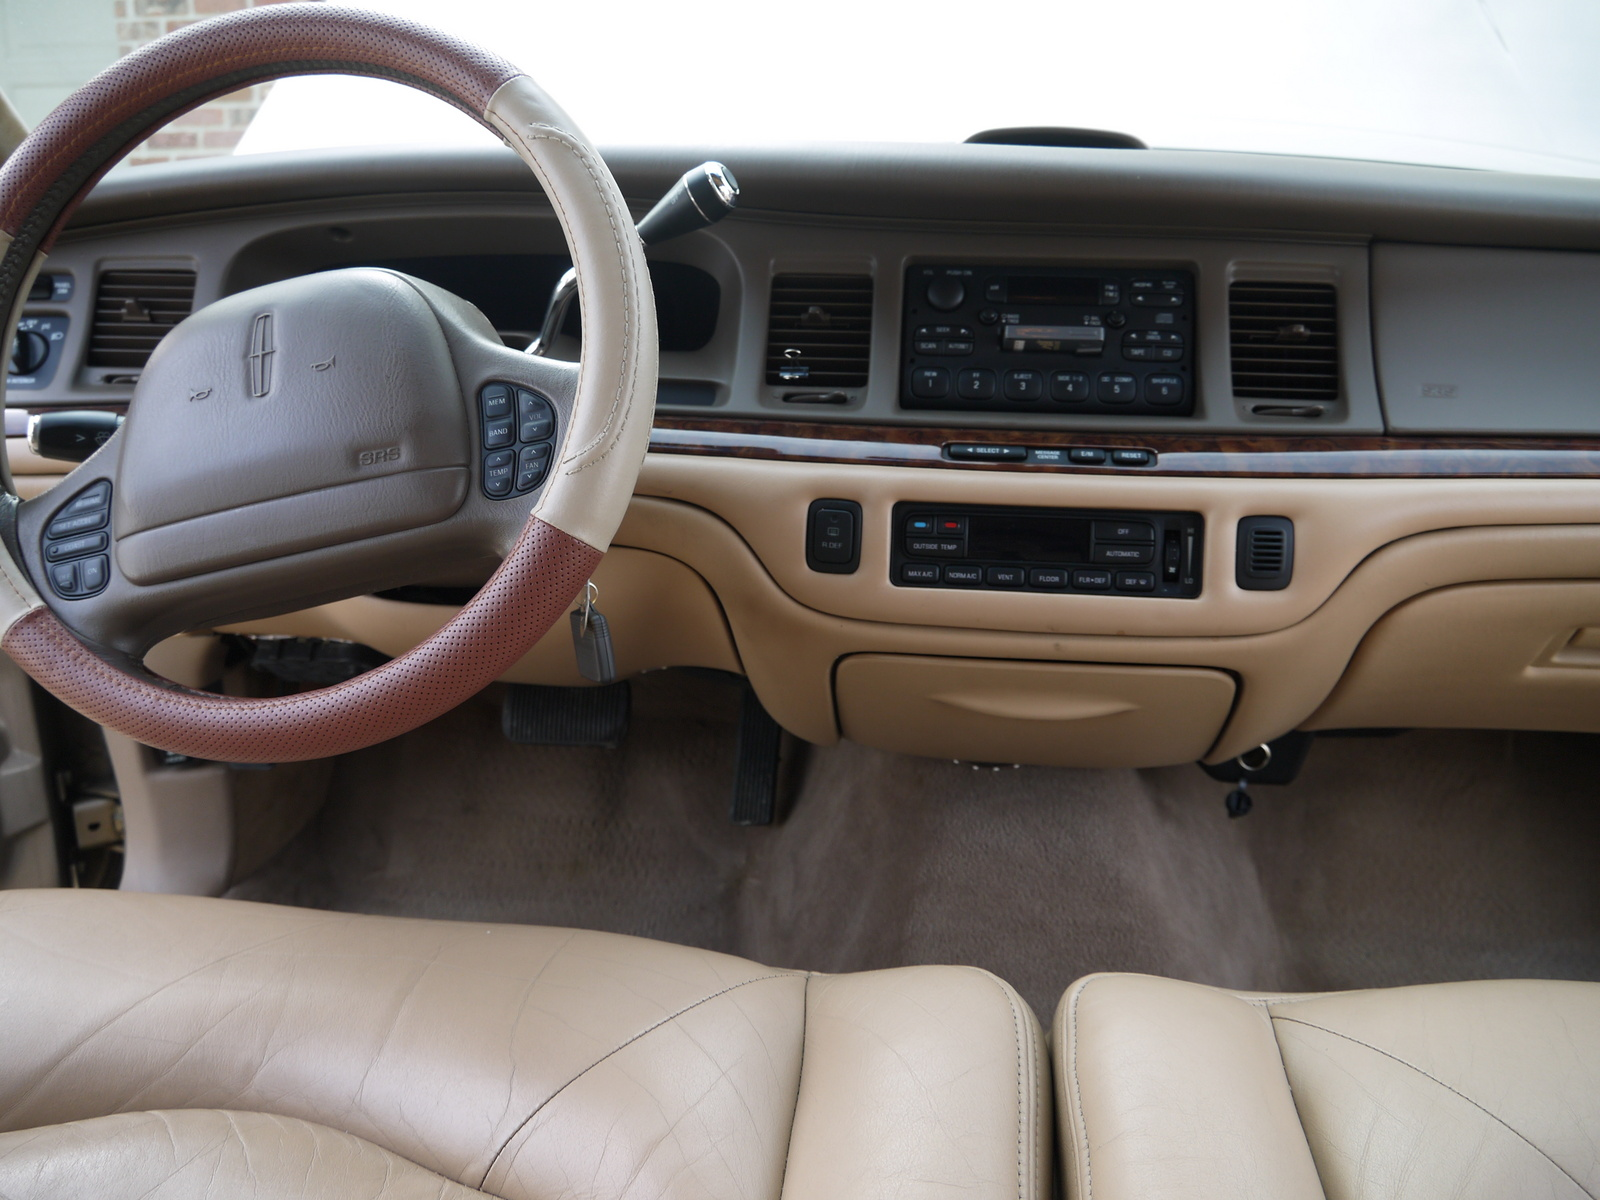 1997 lincoln town car interior pictures to pin on pinterest pinsdaddy. Black Bedroom Furniture Sets. Home Design Ideas